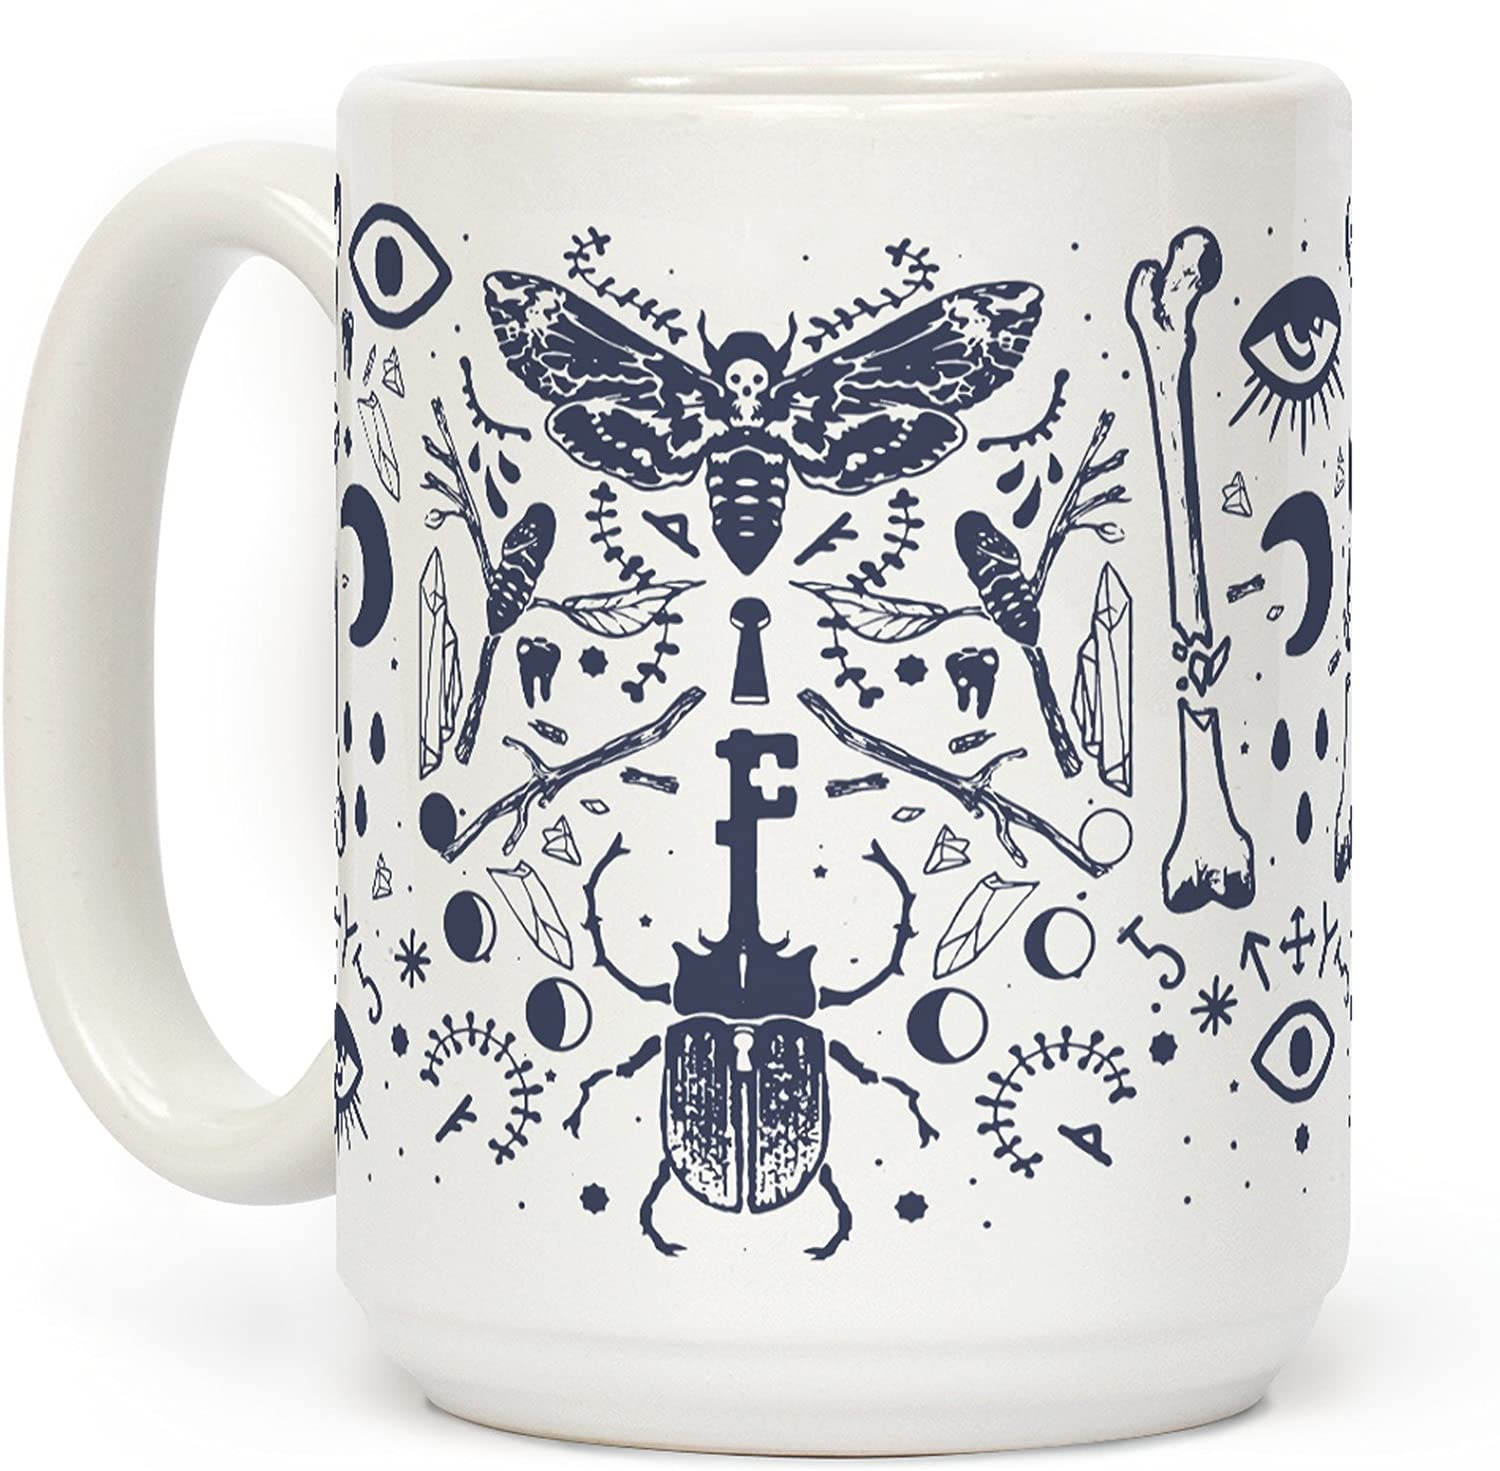 LookHUMAN Occult Musings White 15 Ounce Ceramic Coffee Mug